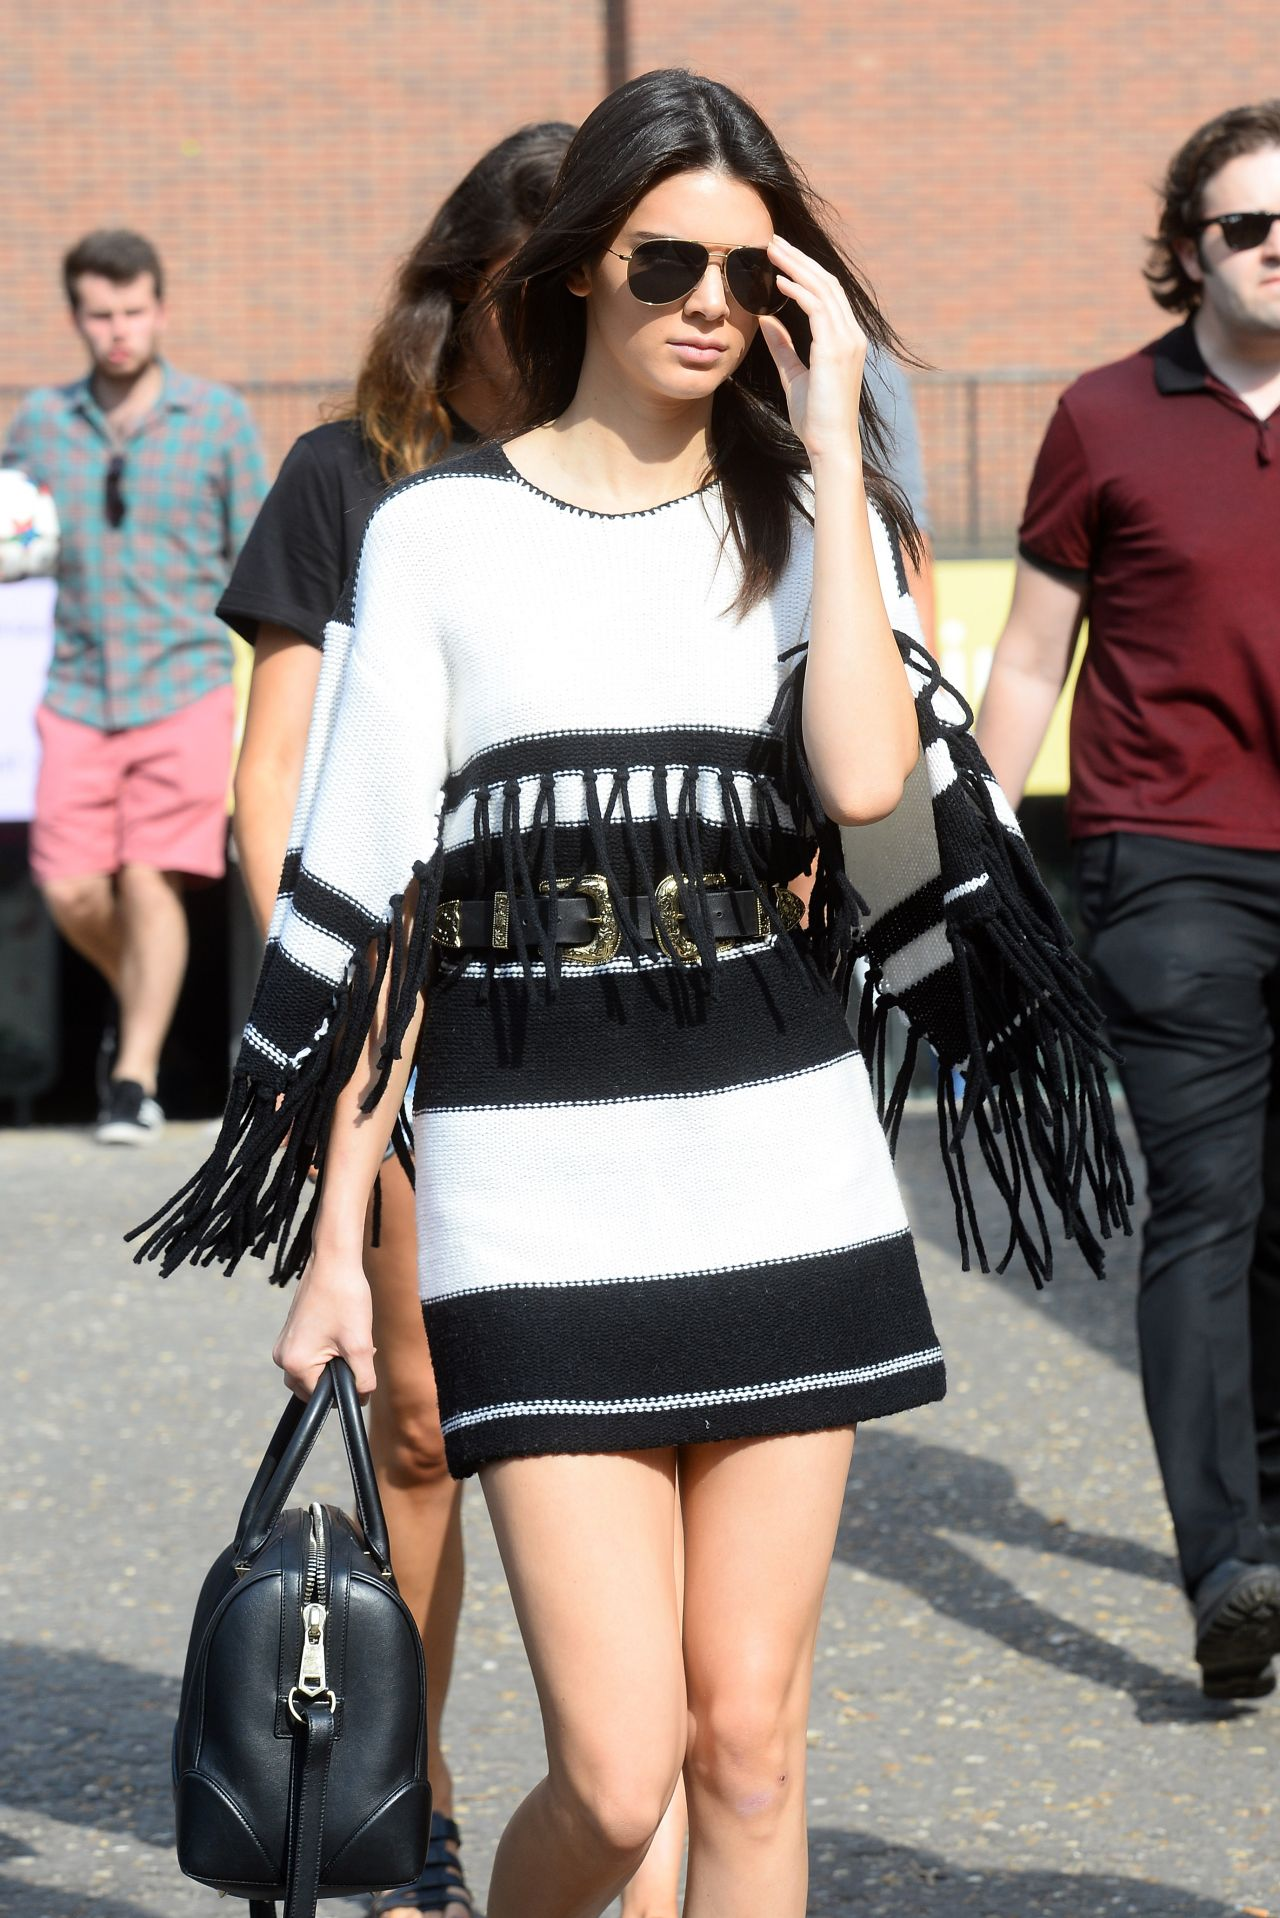 kendall-jenner-street-style-out-in-london-july-2015_13